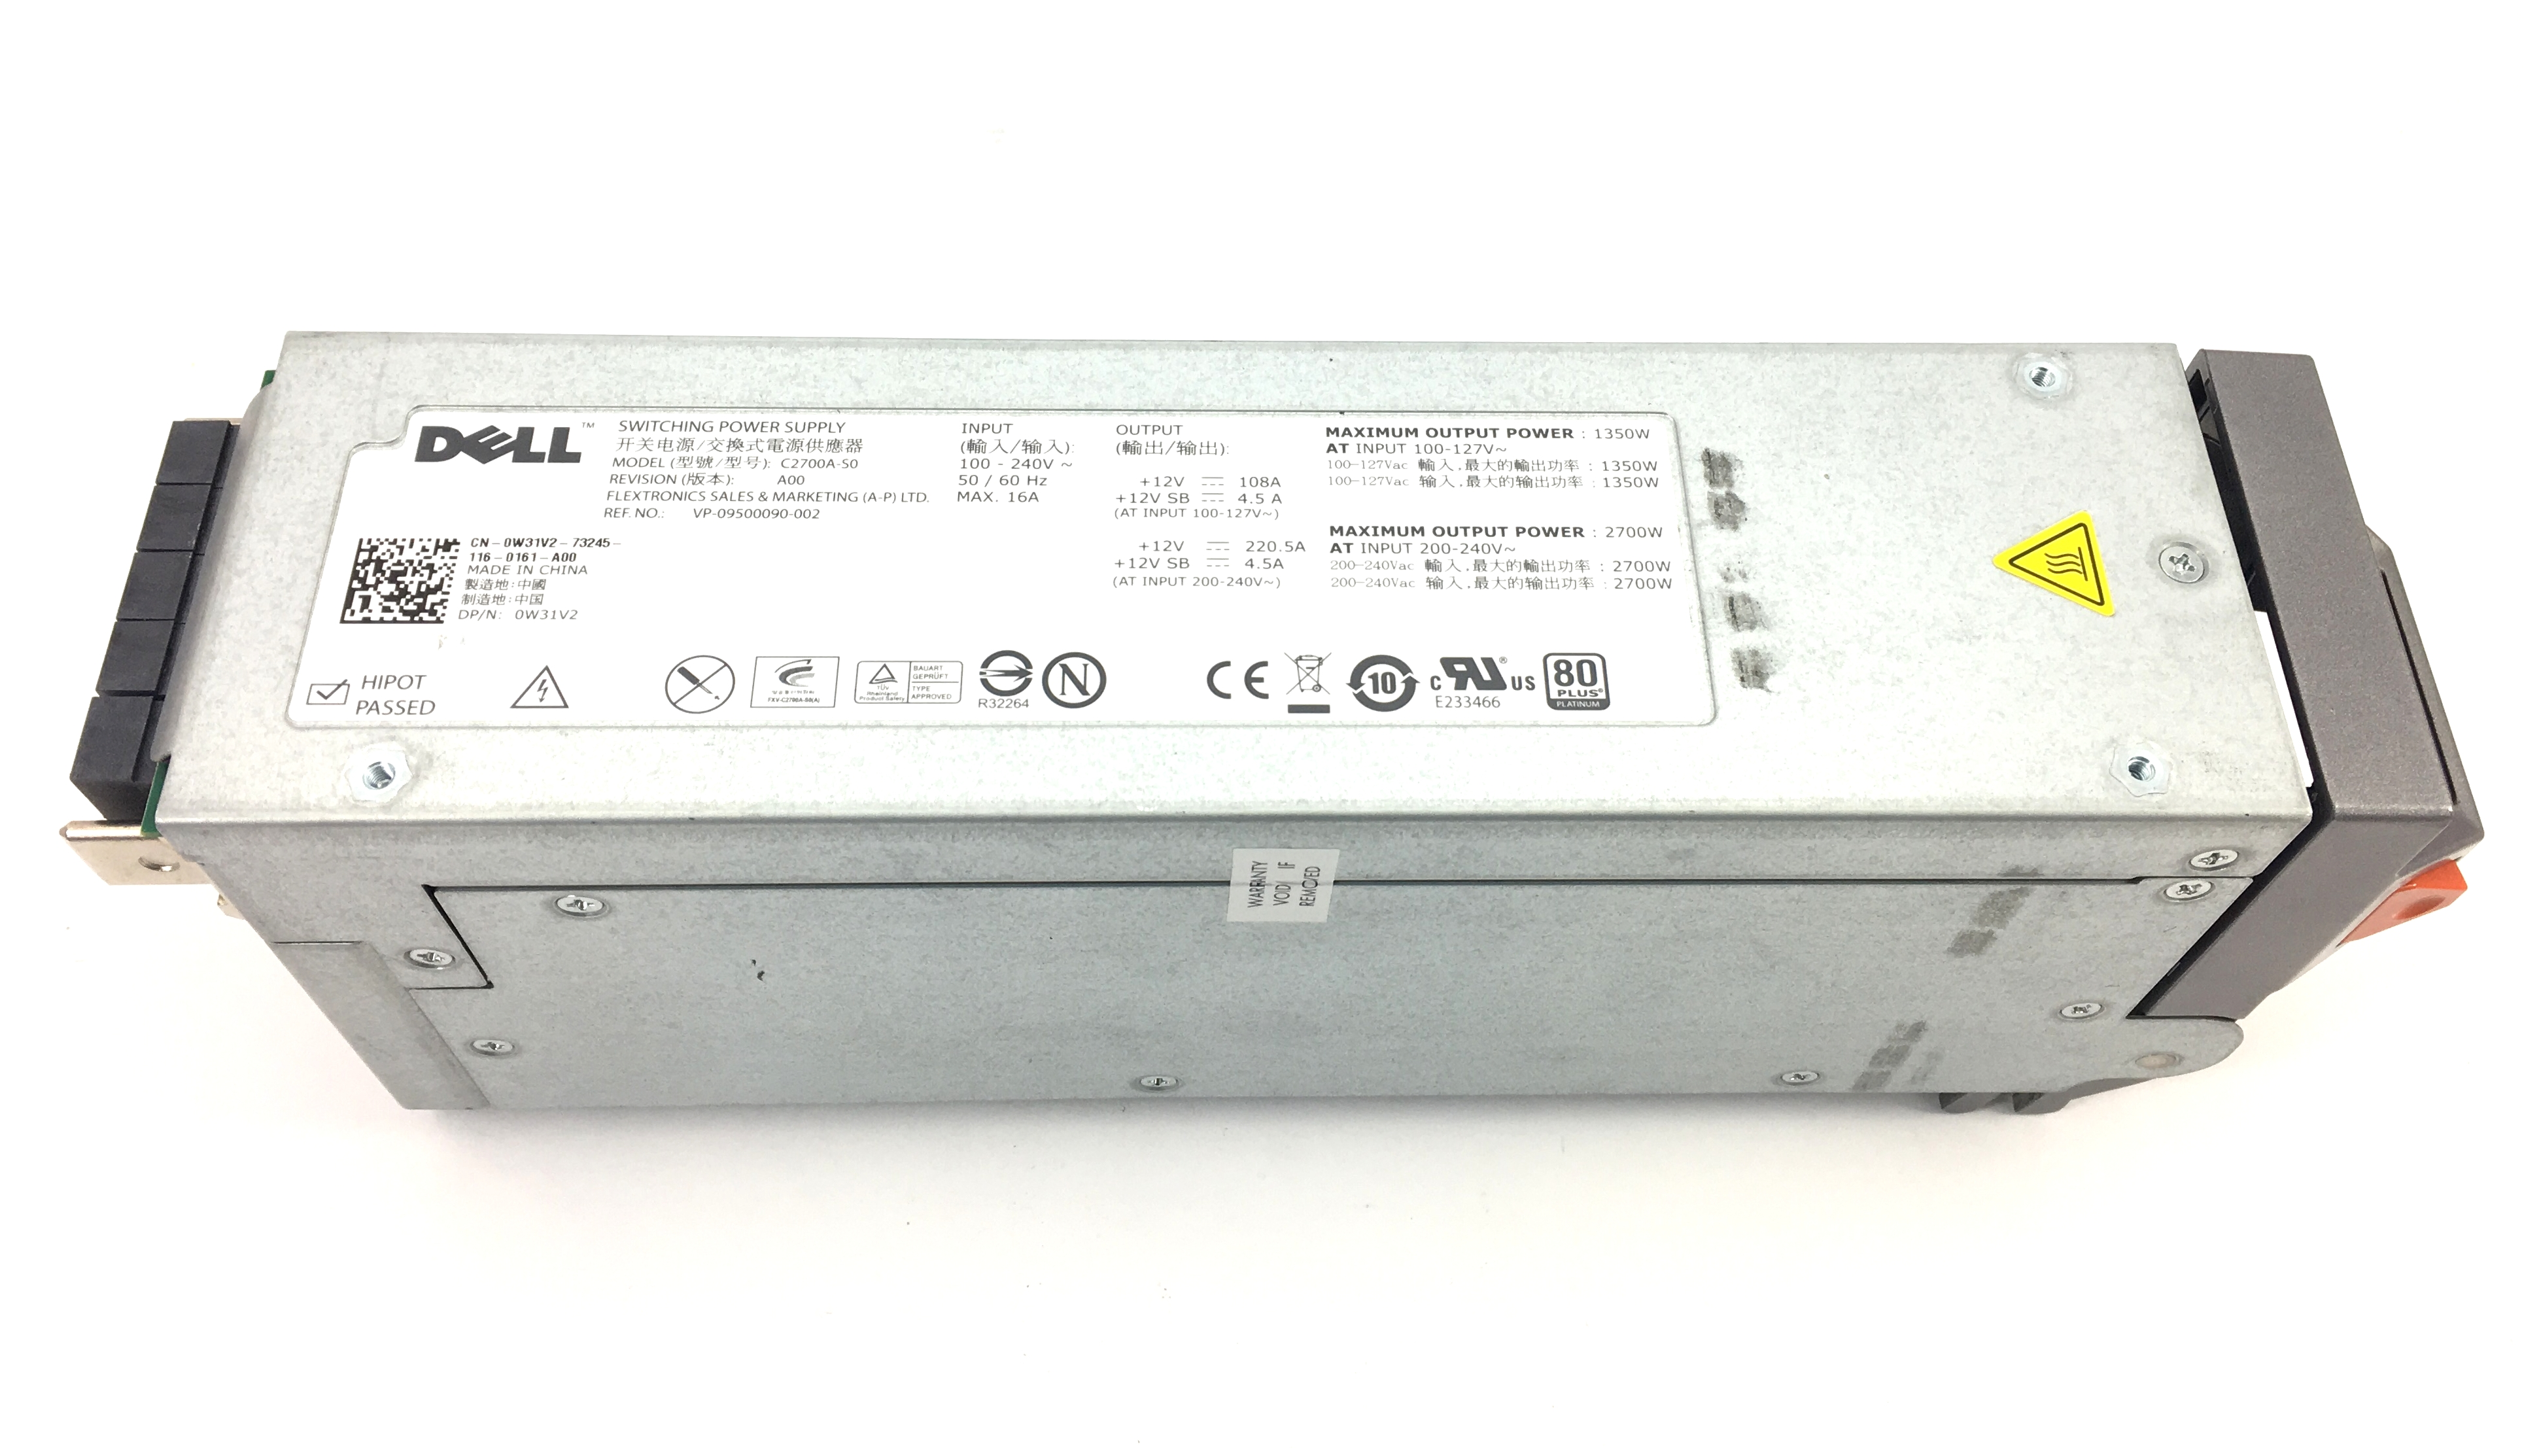 Dell PowerEdge M1000E 2700W Switching Power Supply (C2700A-S0)